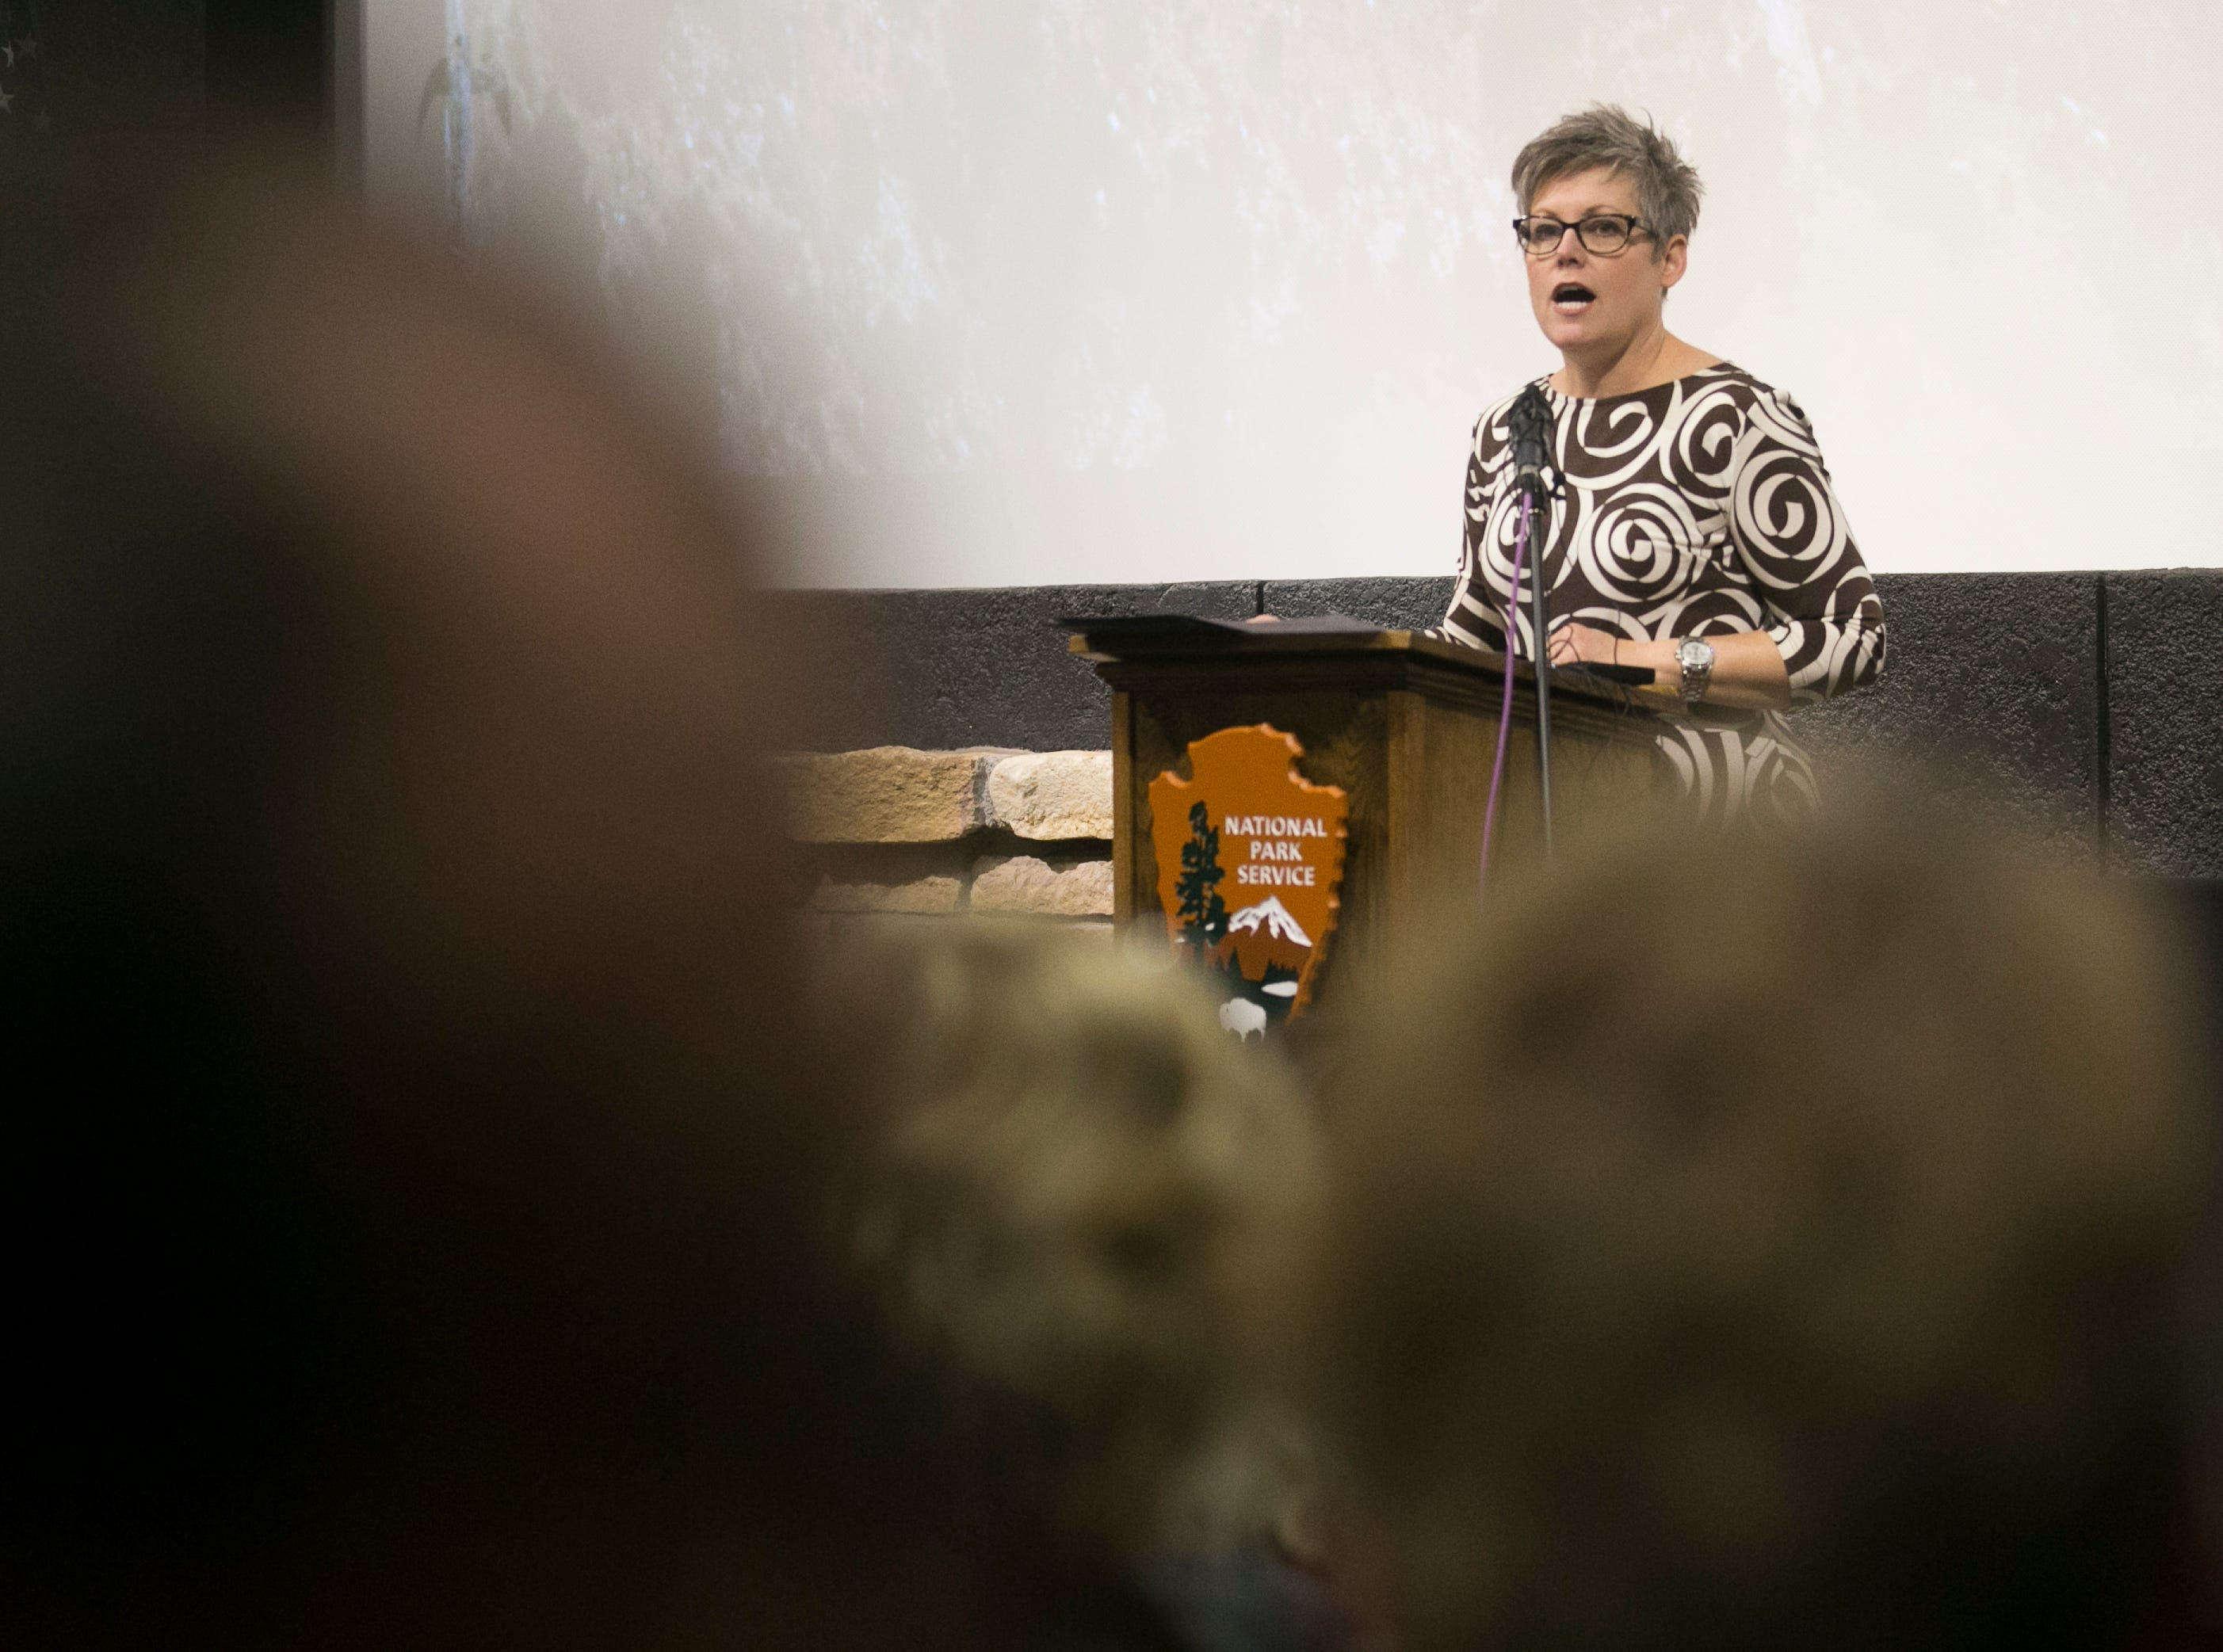 Arizona Secretary of State Katie Hobbs speaks at the Grand Canyon visitors center for the park's 100th anniversary celebration on Feb. 26, 2019.